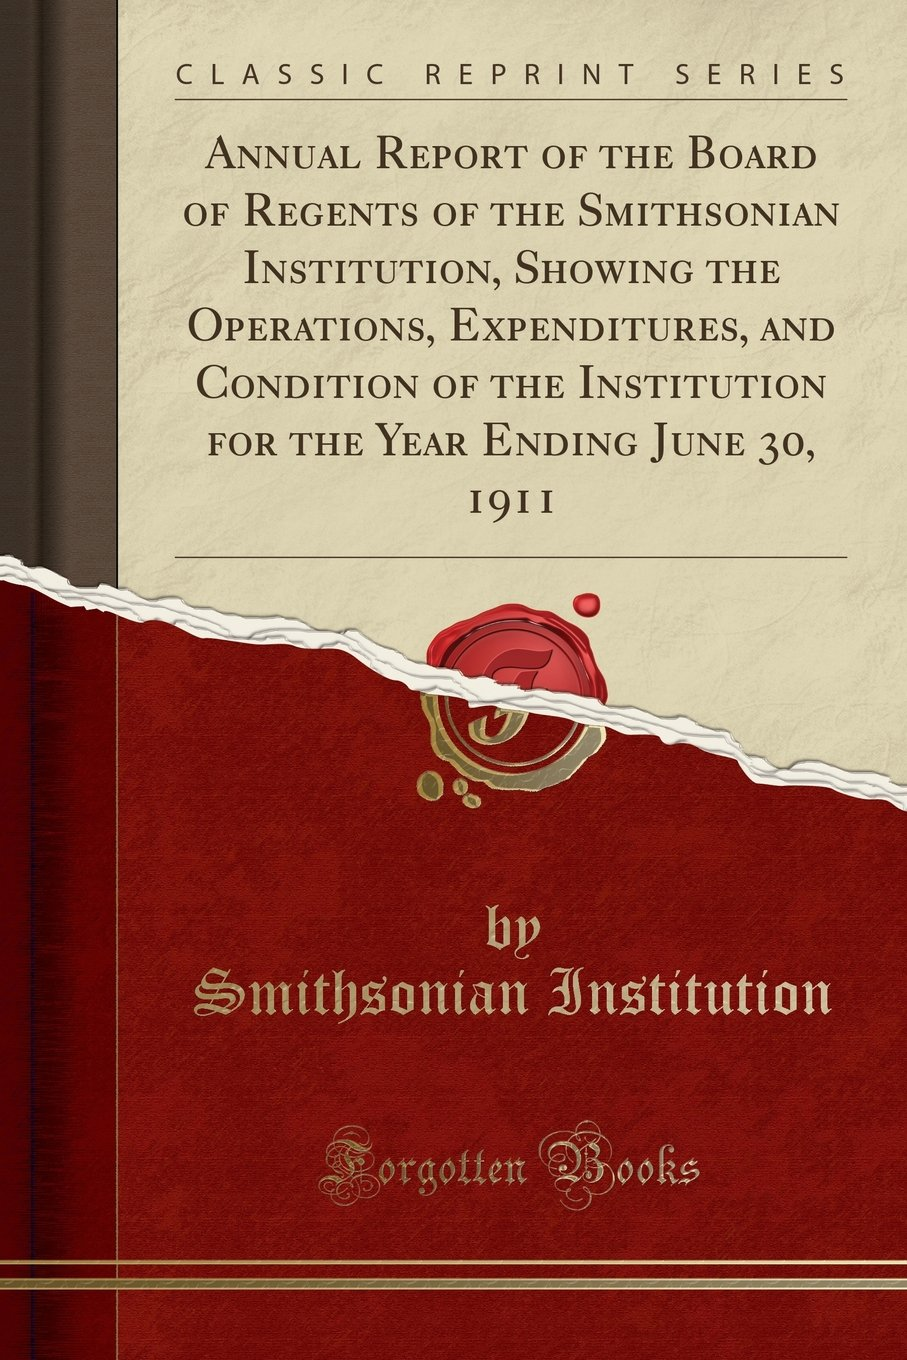 Annual Report of the Board of Regents of the Smithsonian Institution, Showing the Operations, Expenditures, and Condition of the Institution for the Year Ending June 30, 1911 (Classic Reprint) pdf epub